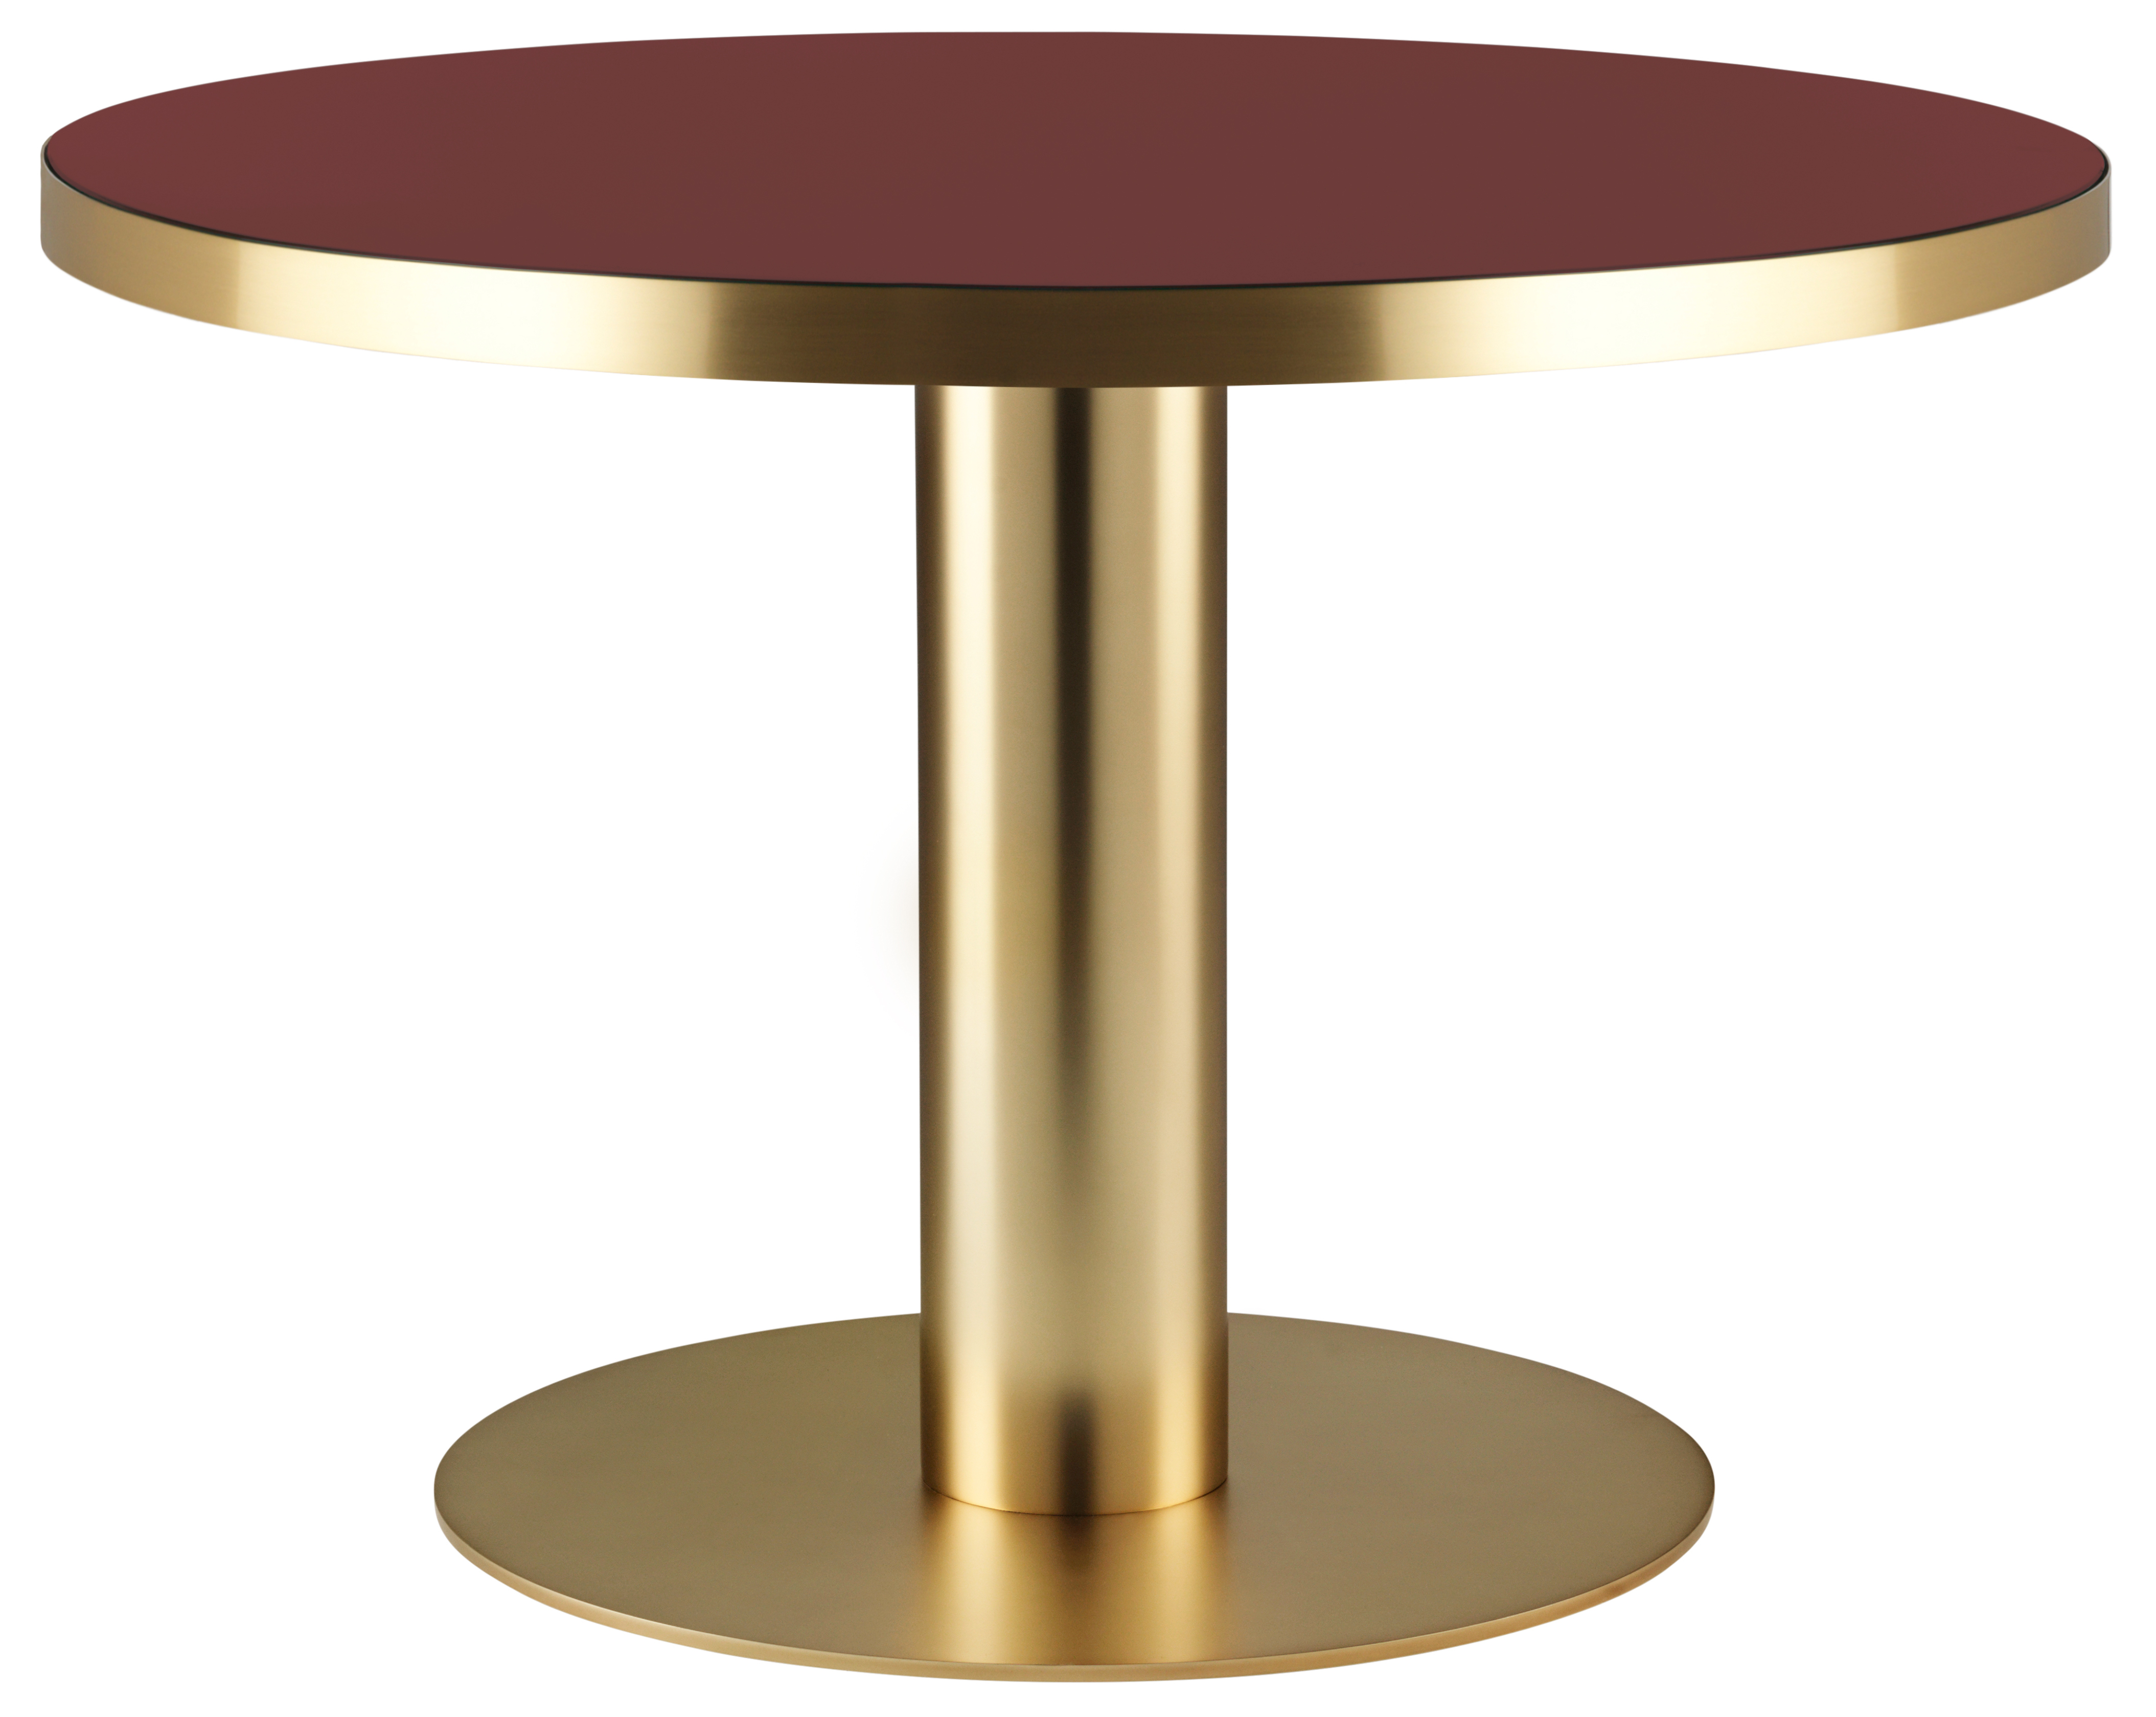 gubi round tables 2 0 glass table top gubi